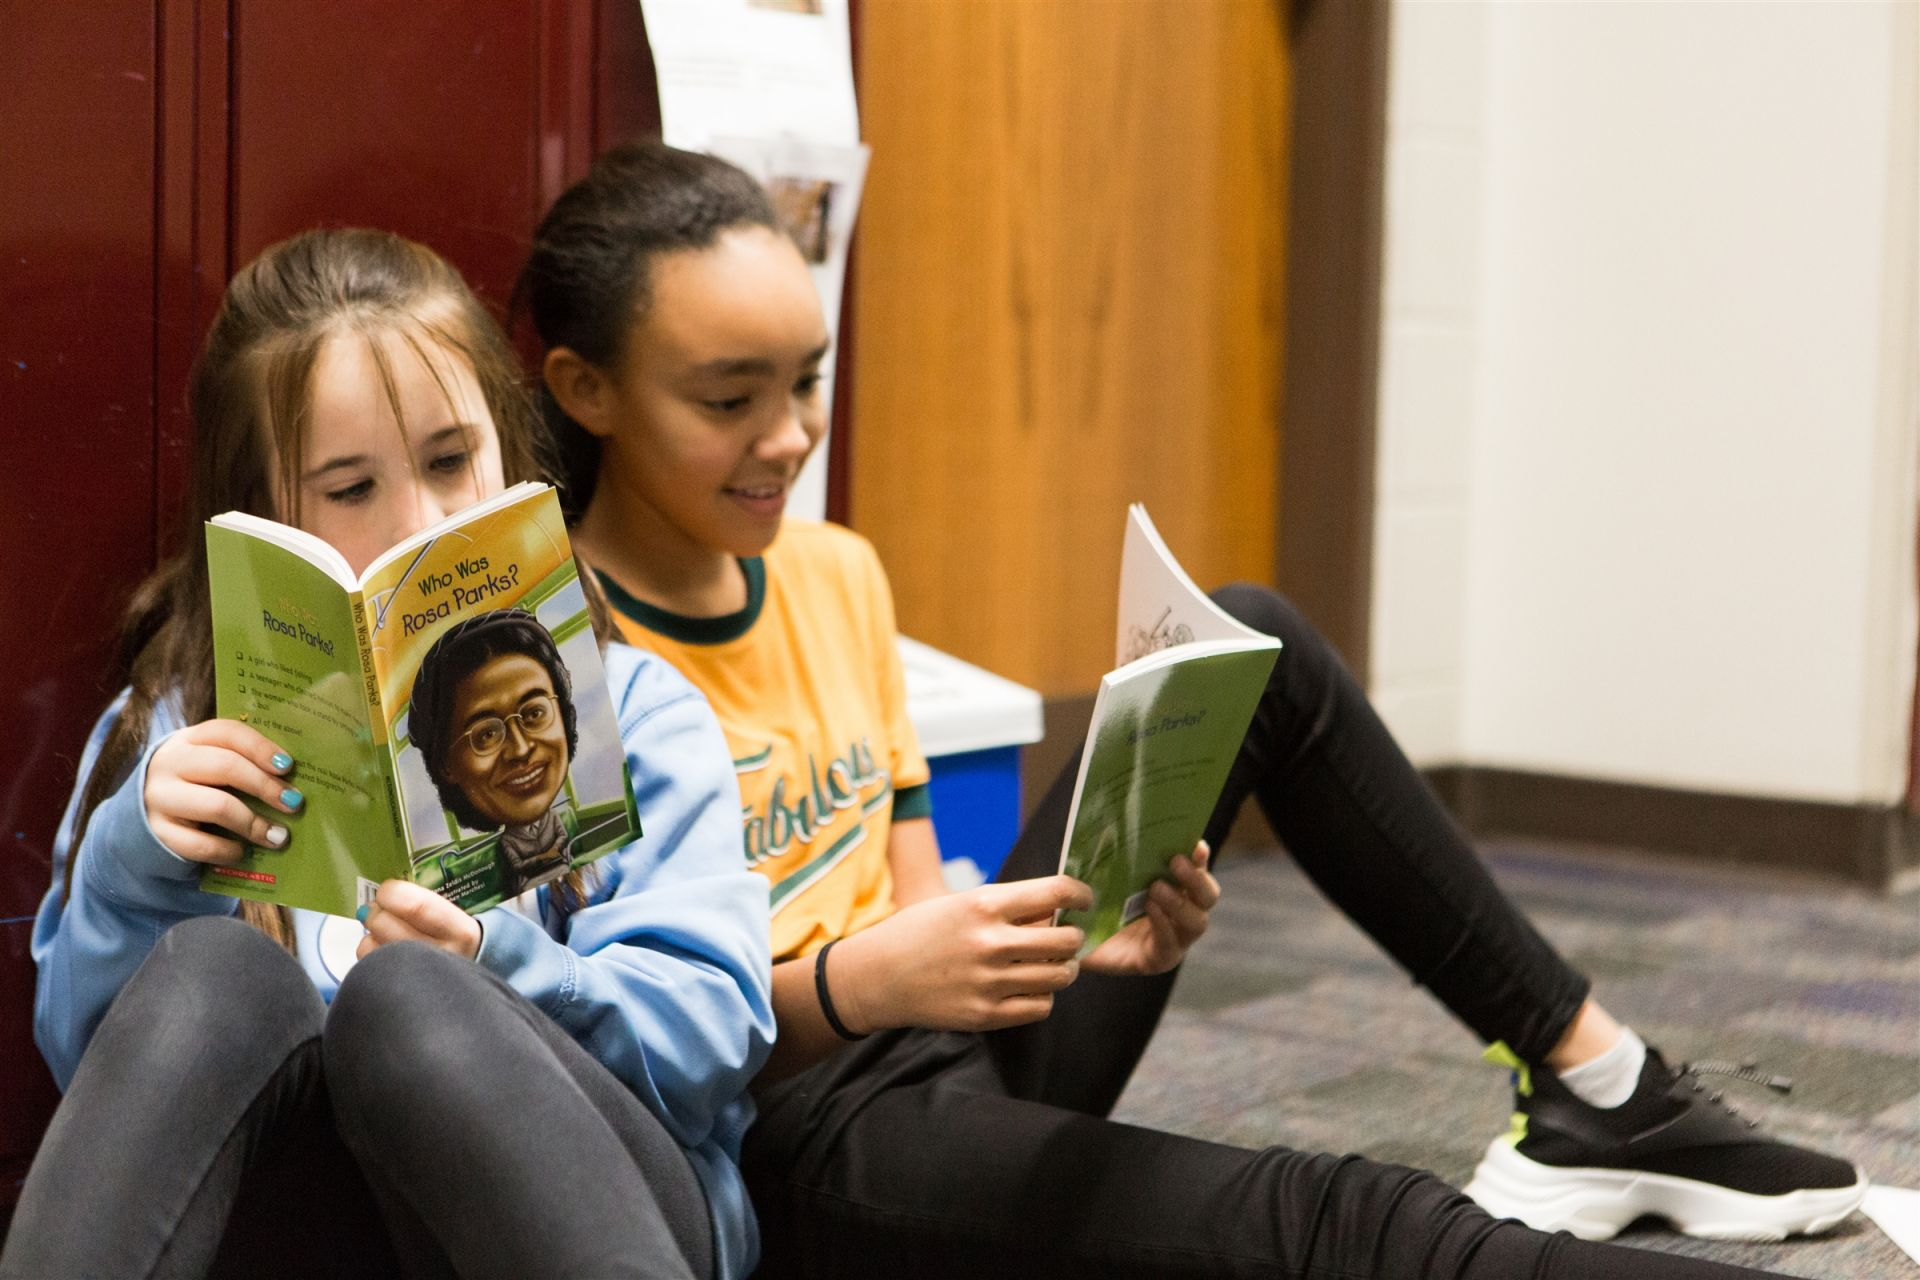 Sometimes the best place to read is the hallway, especially when you have a GREAT book!